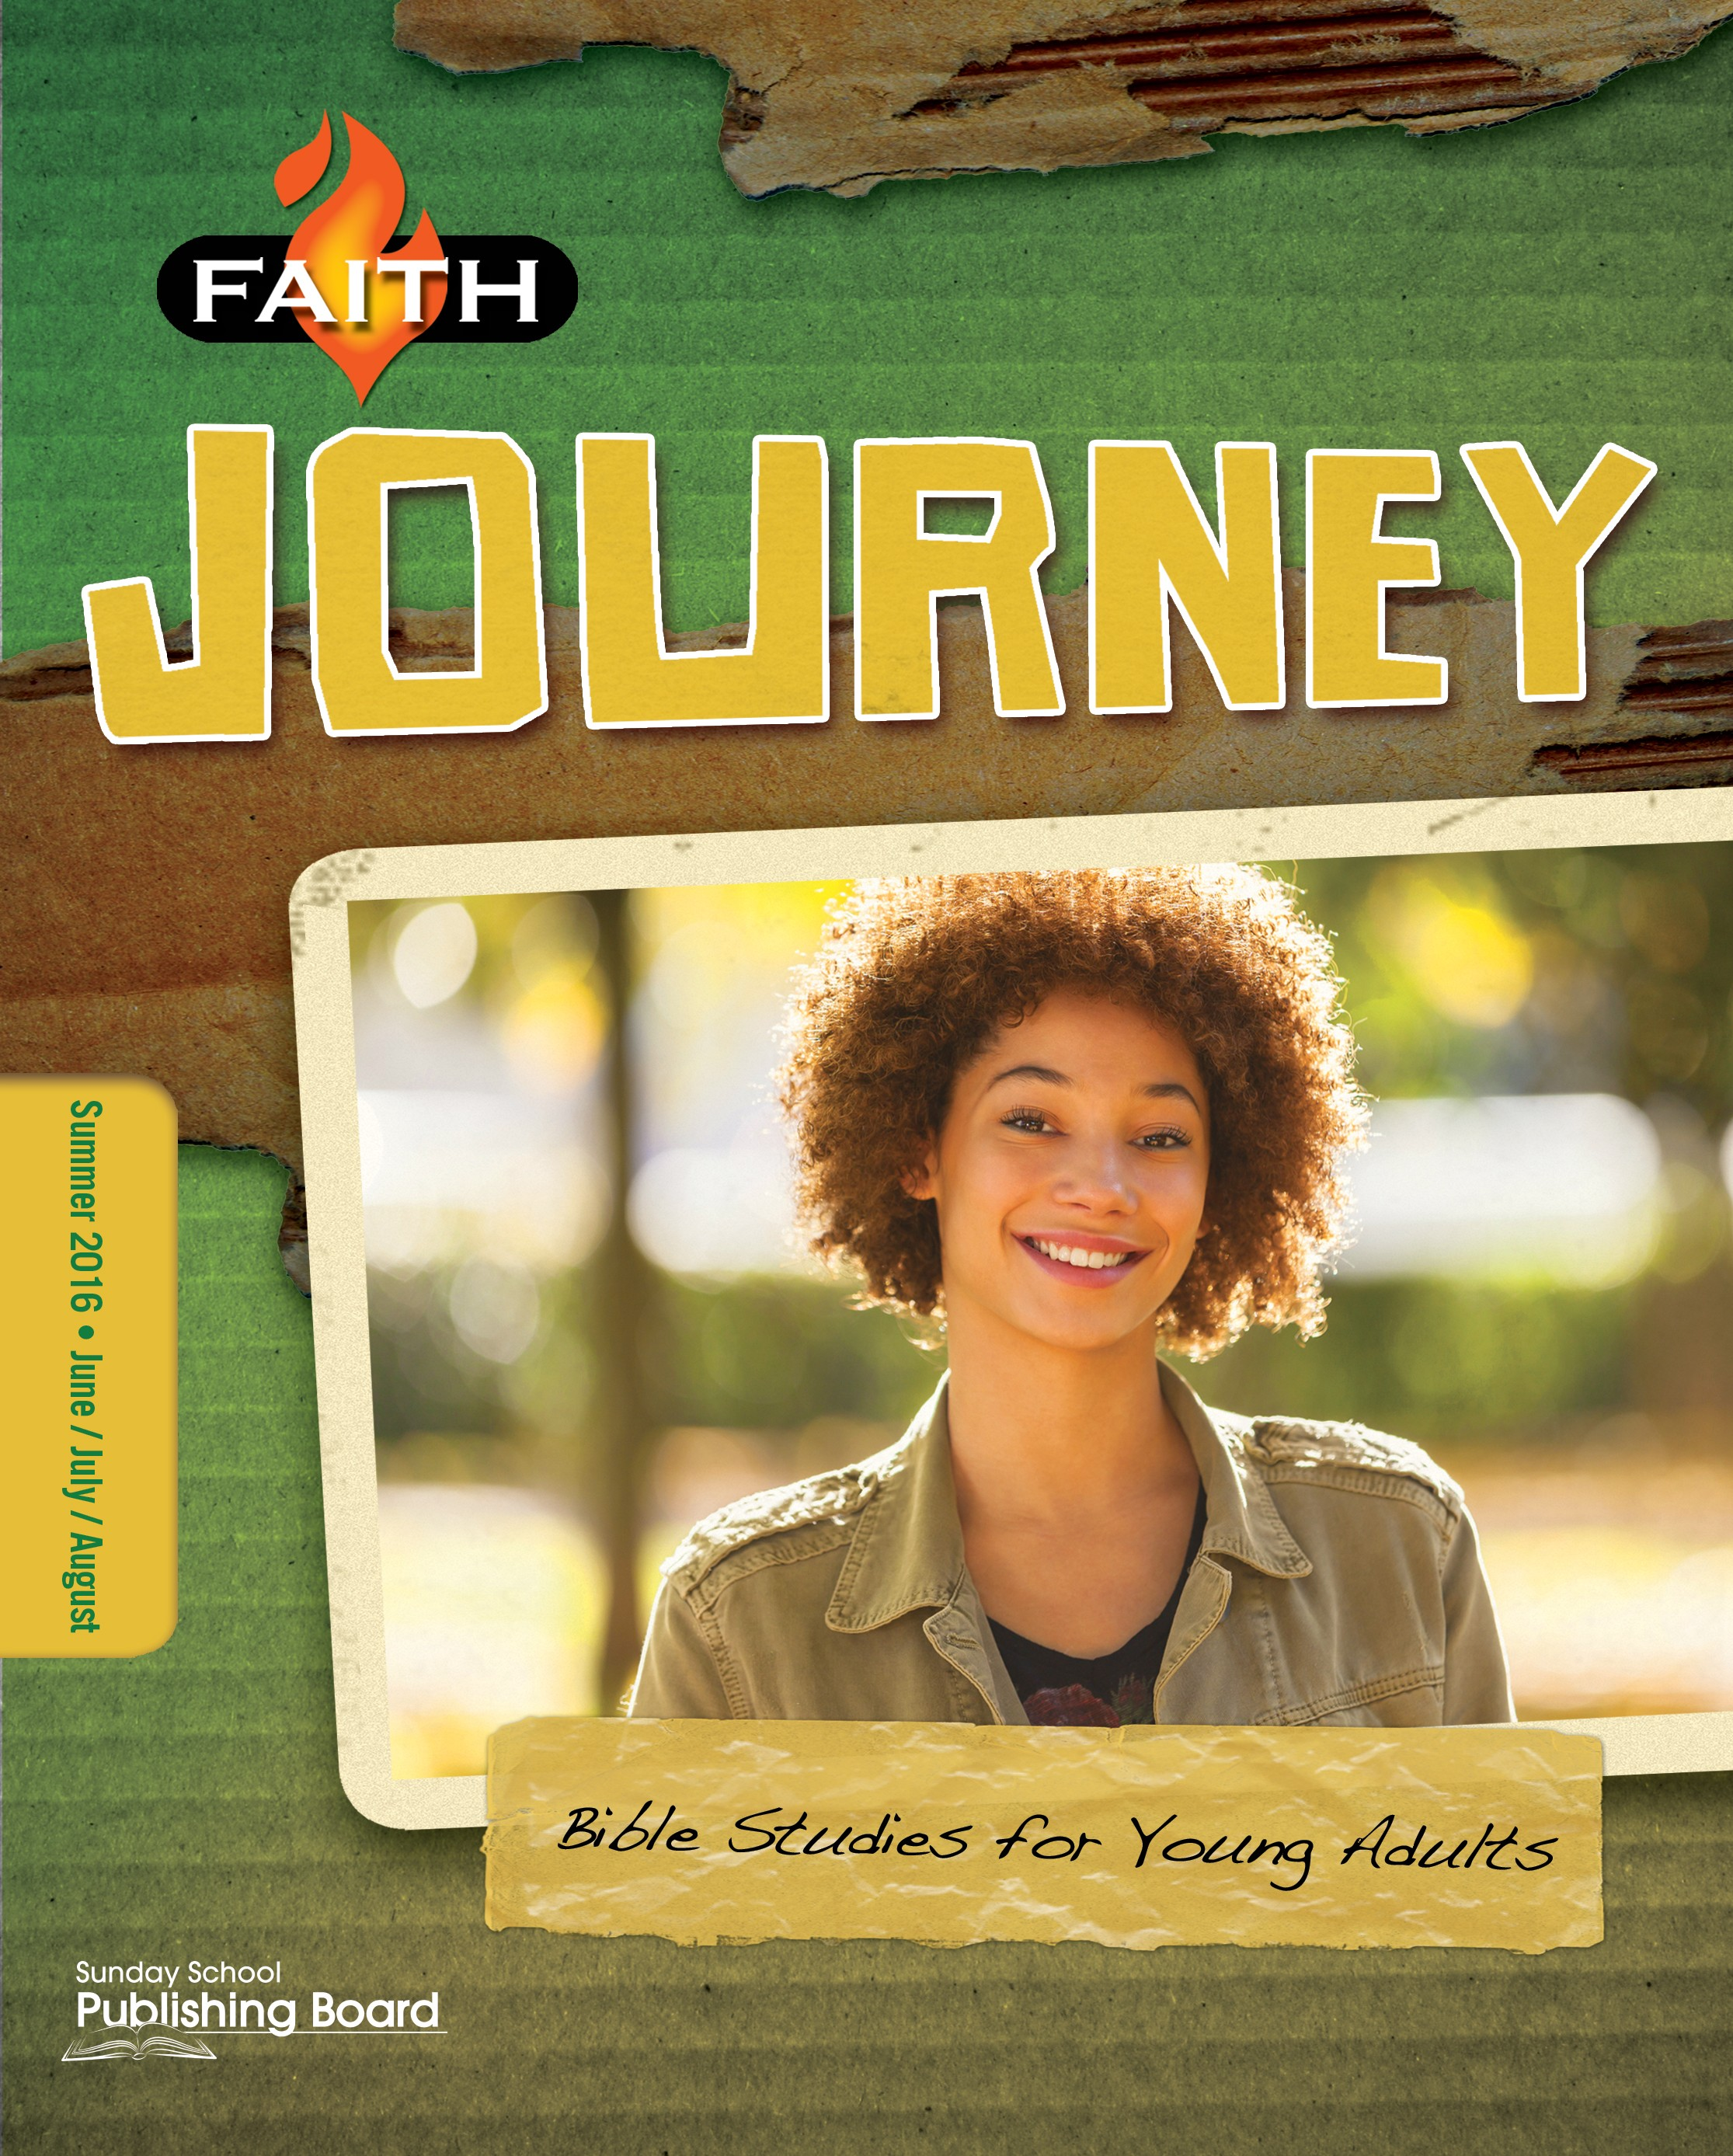 Faith Journey - Bible Studies for Young Adults (Ages 18-34)